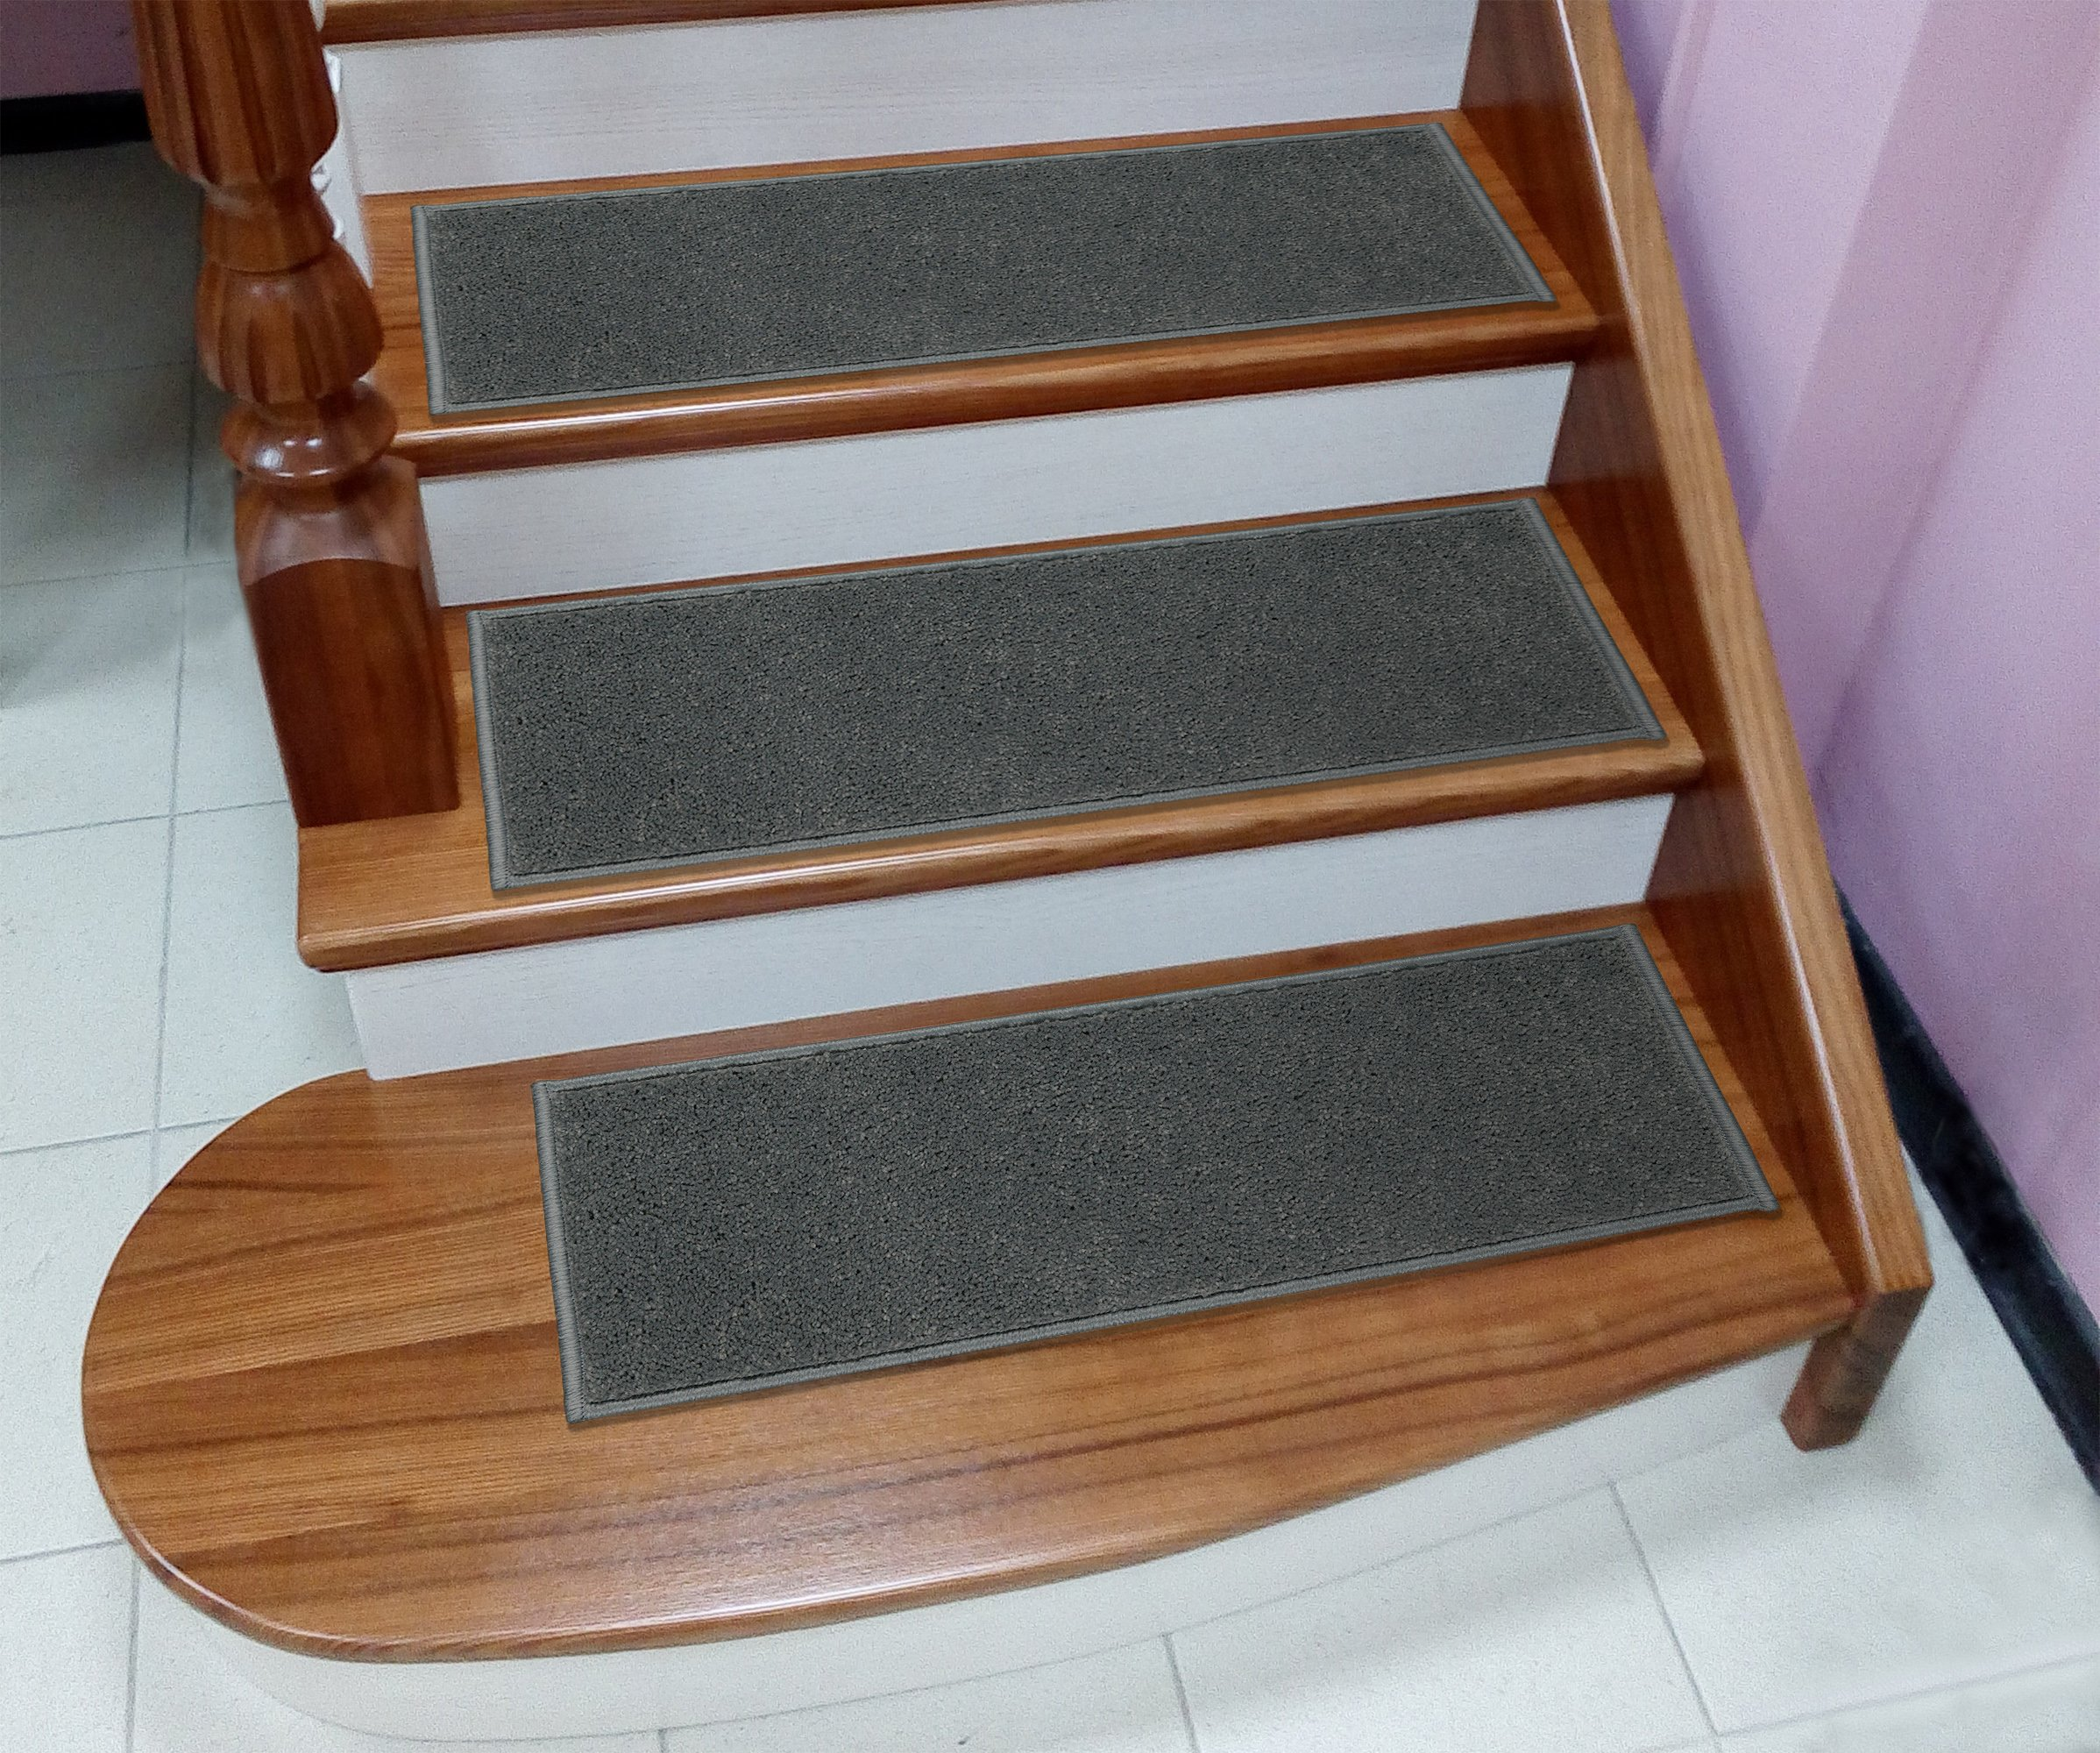 Sweethome Stores Non-Slip Shag Carpet Stair Treads, 9-by-26-Inch, (Pack of 14) - Grey Solid